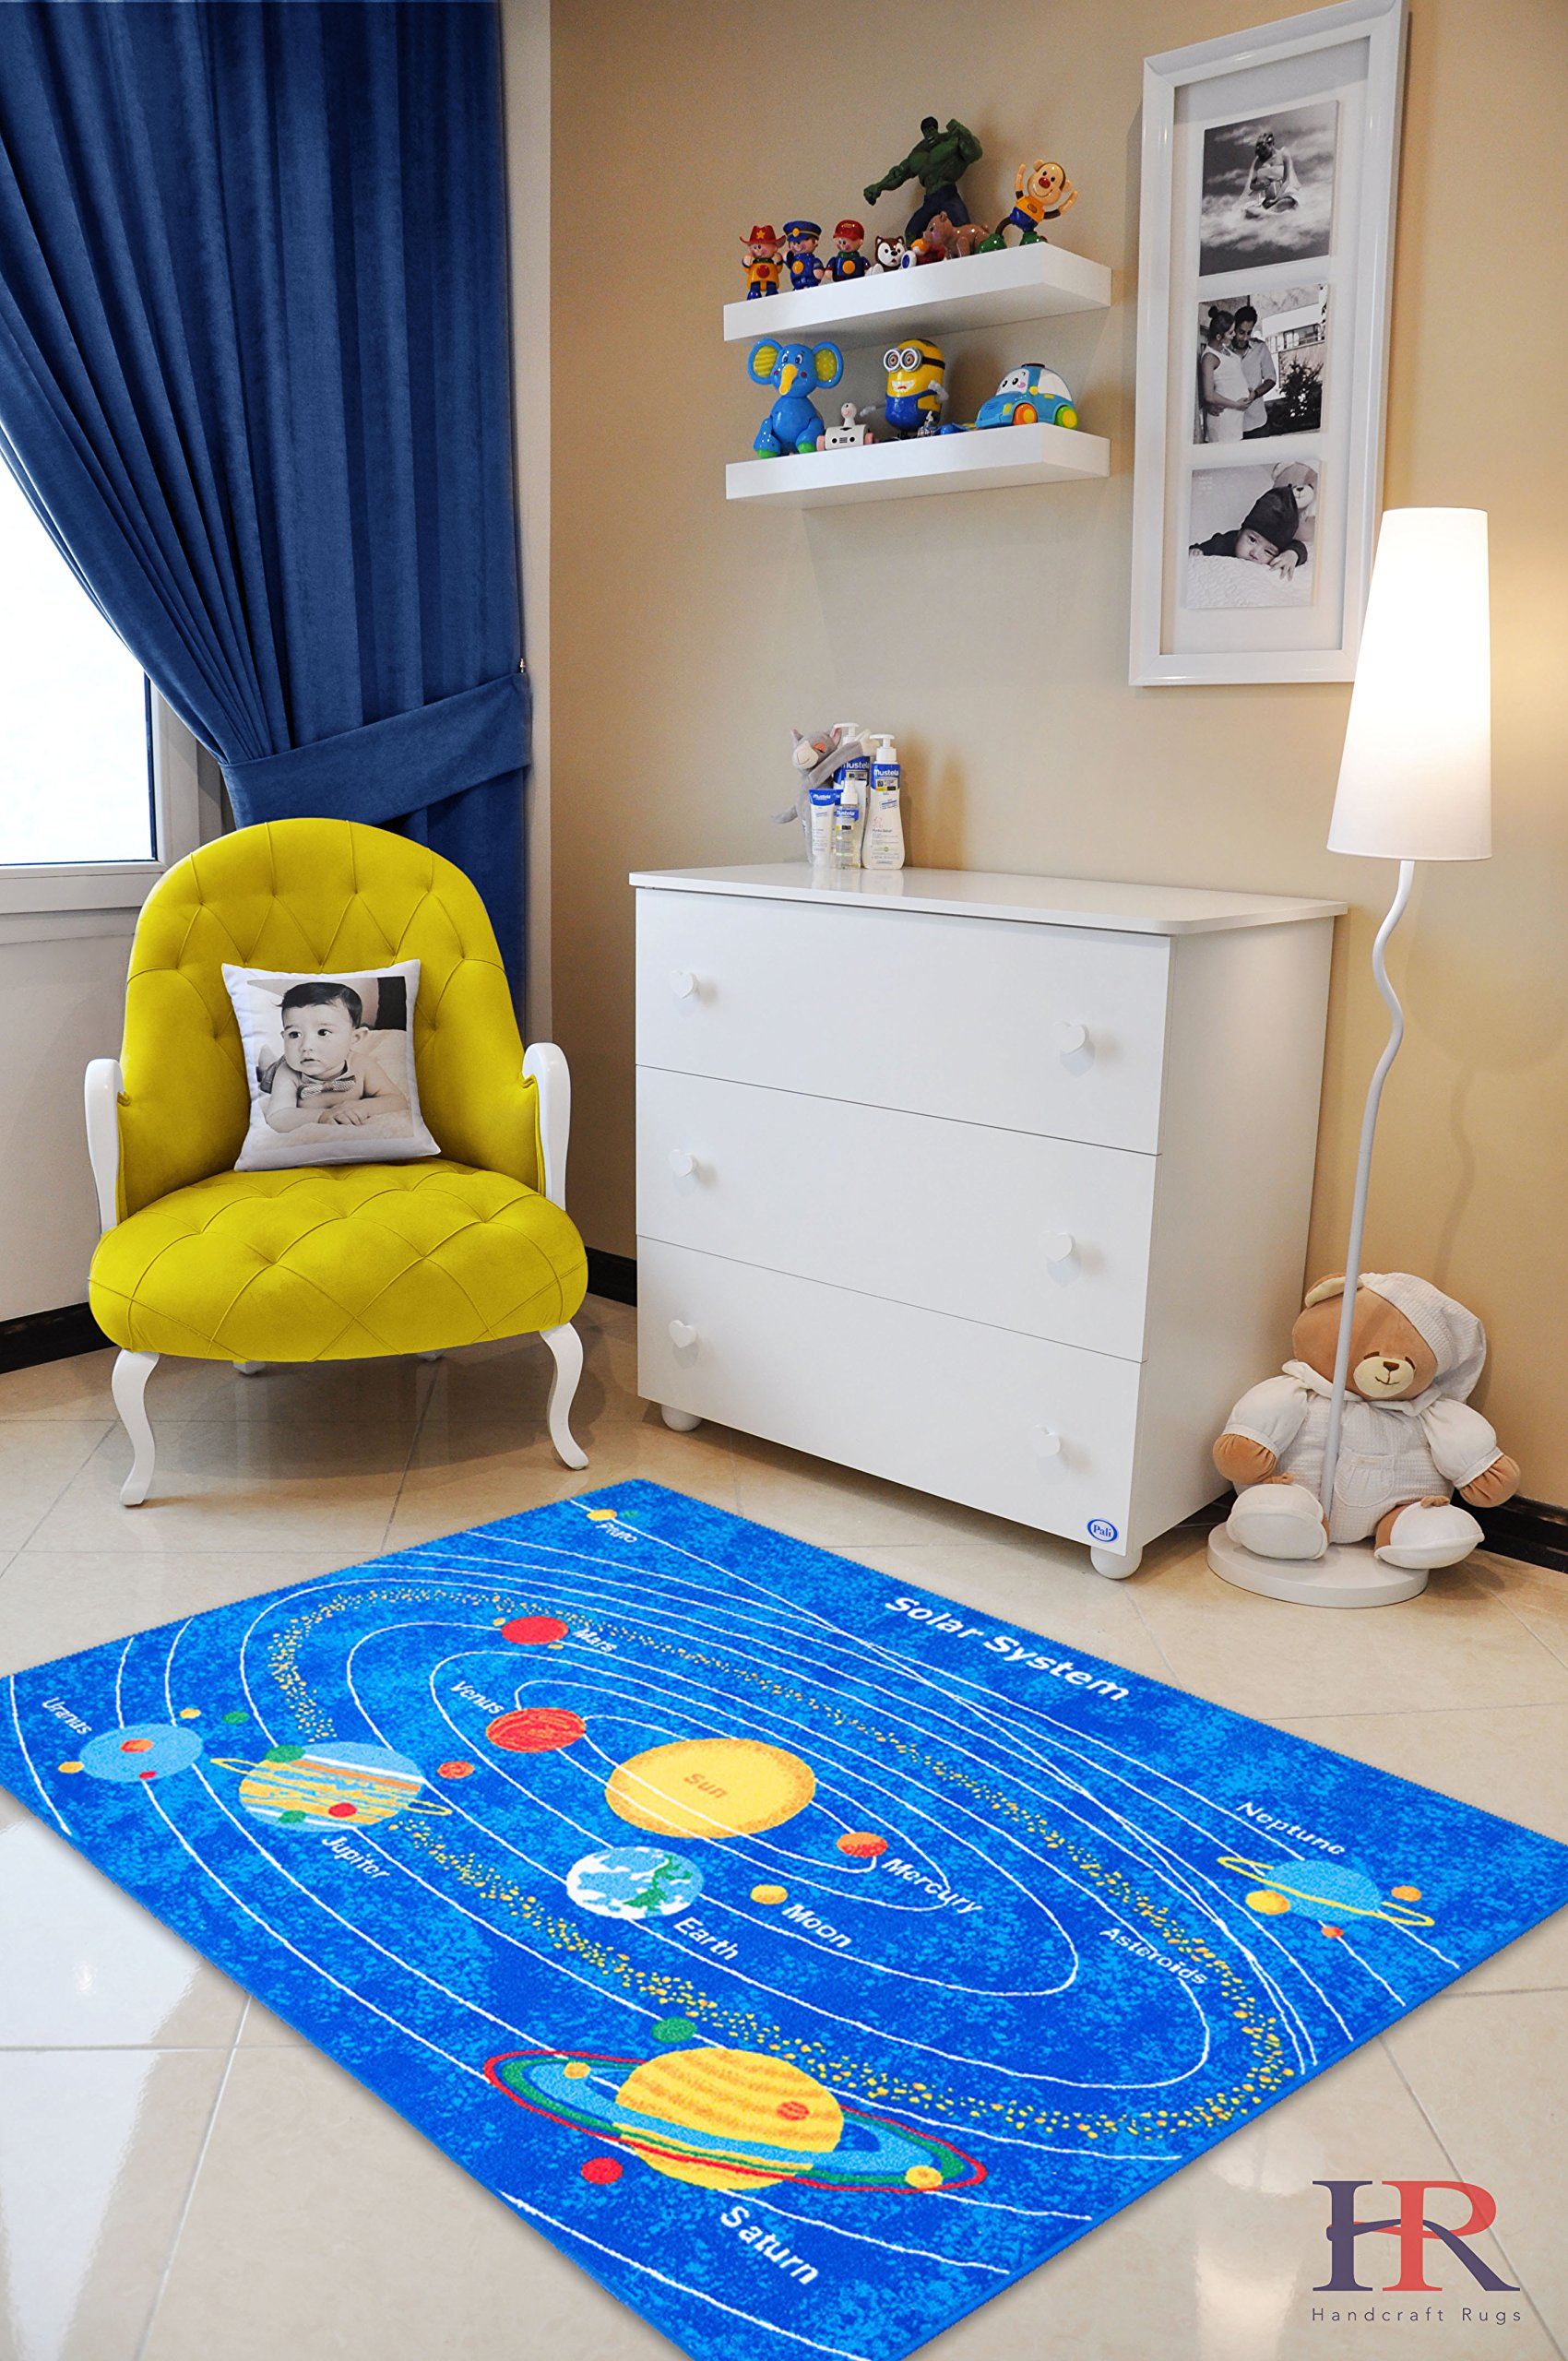 HR'S 5FTX7FT KIDS EDUCATIONAL SOLAR SYSTEM RUG. PLEASE CHECK ALL THE PICTURES